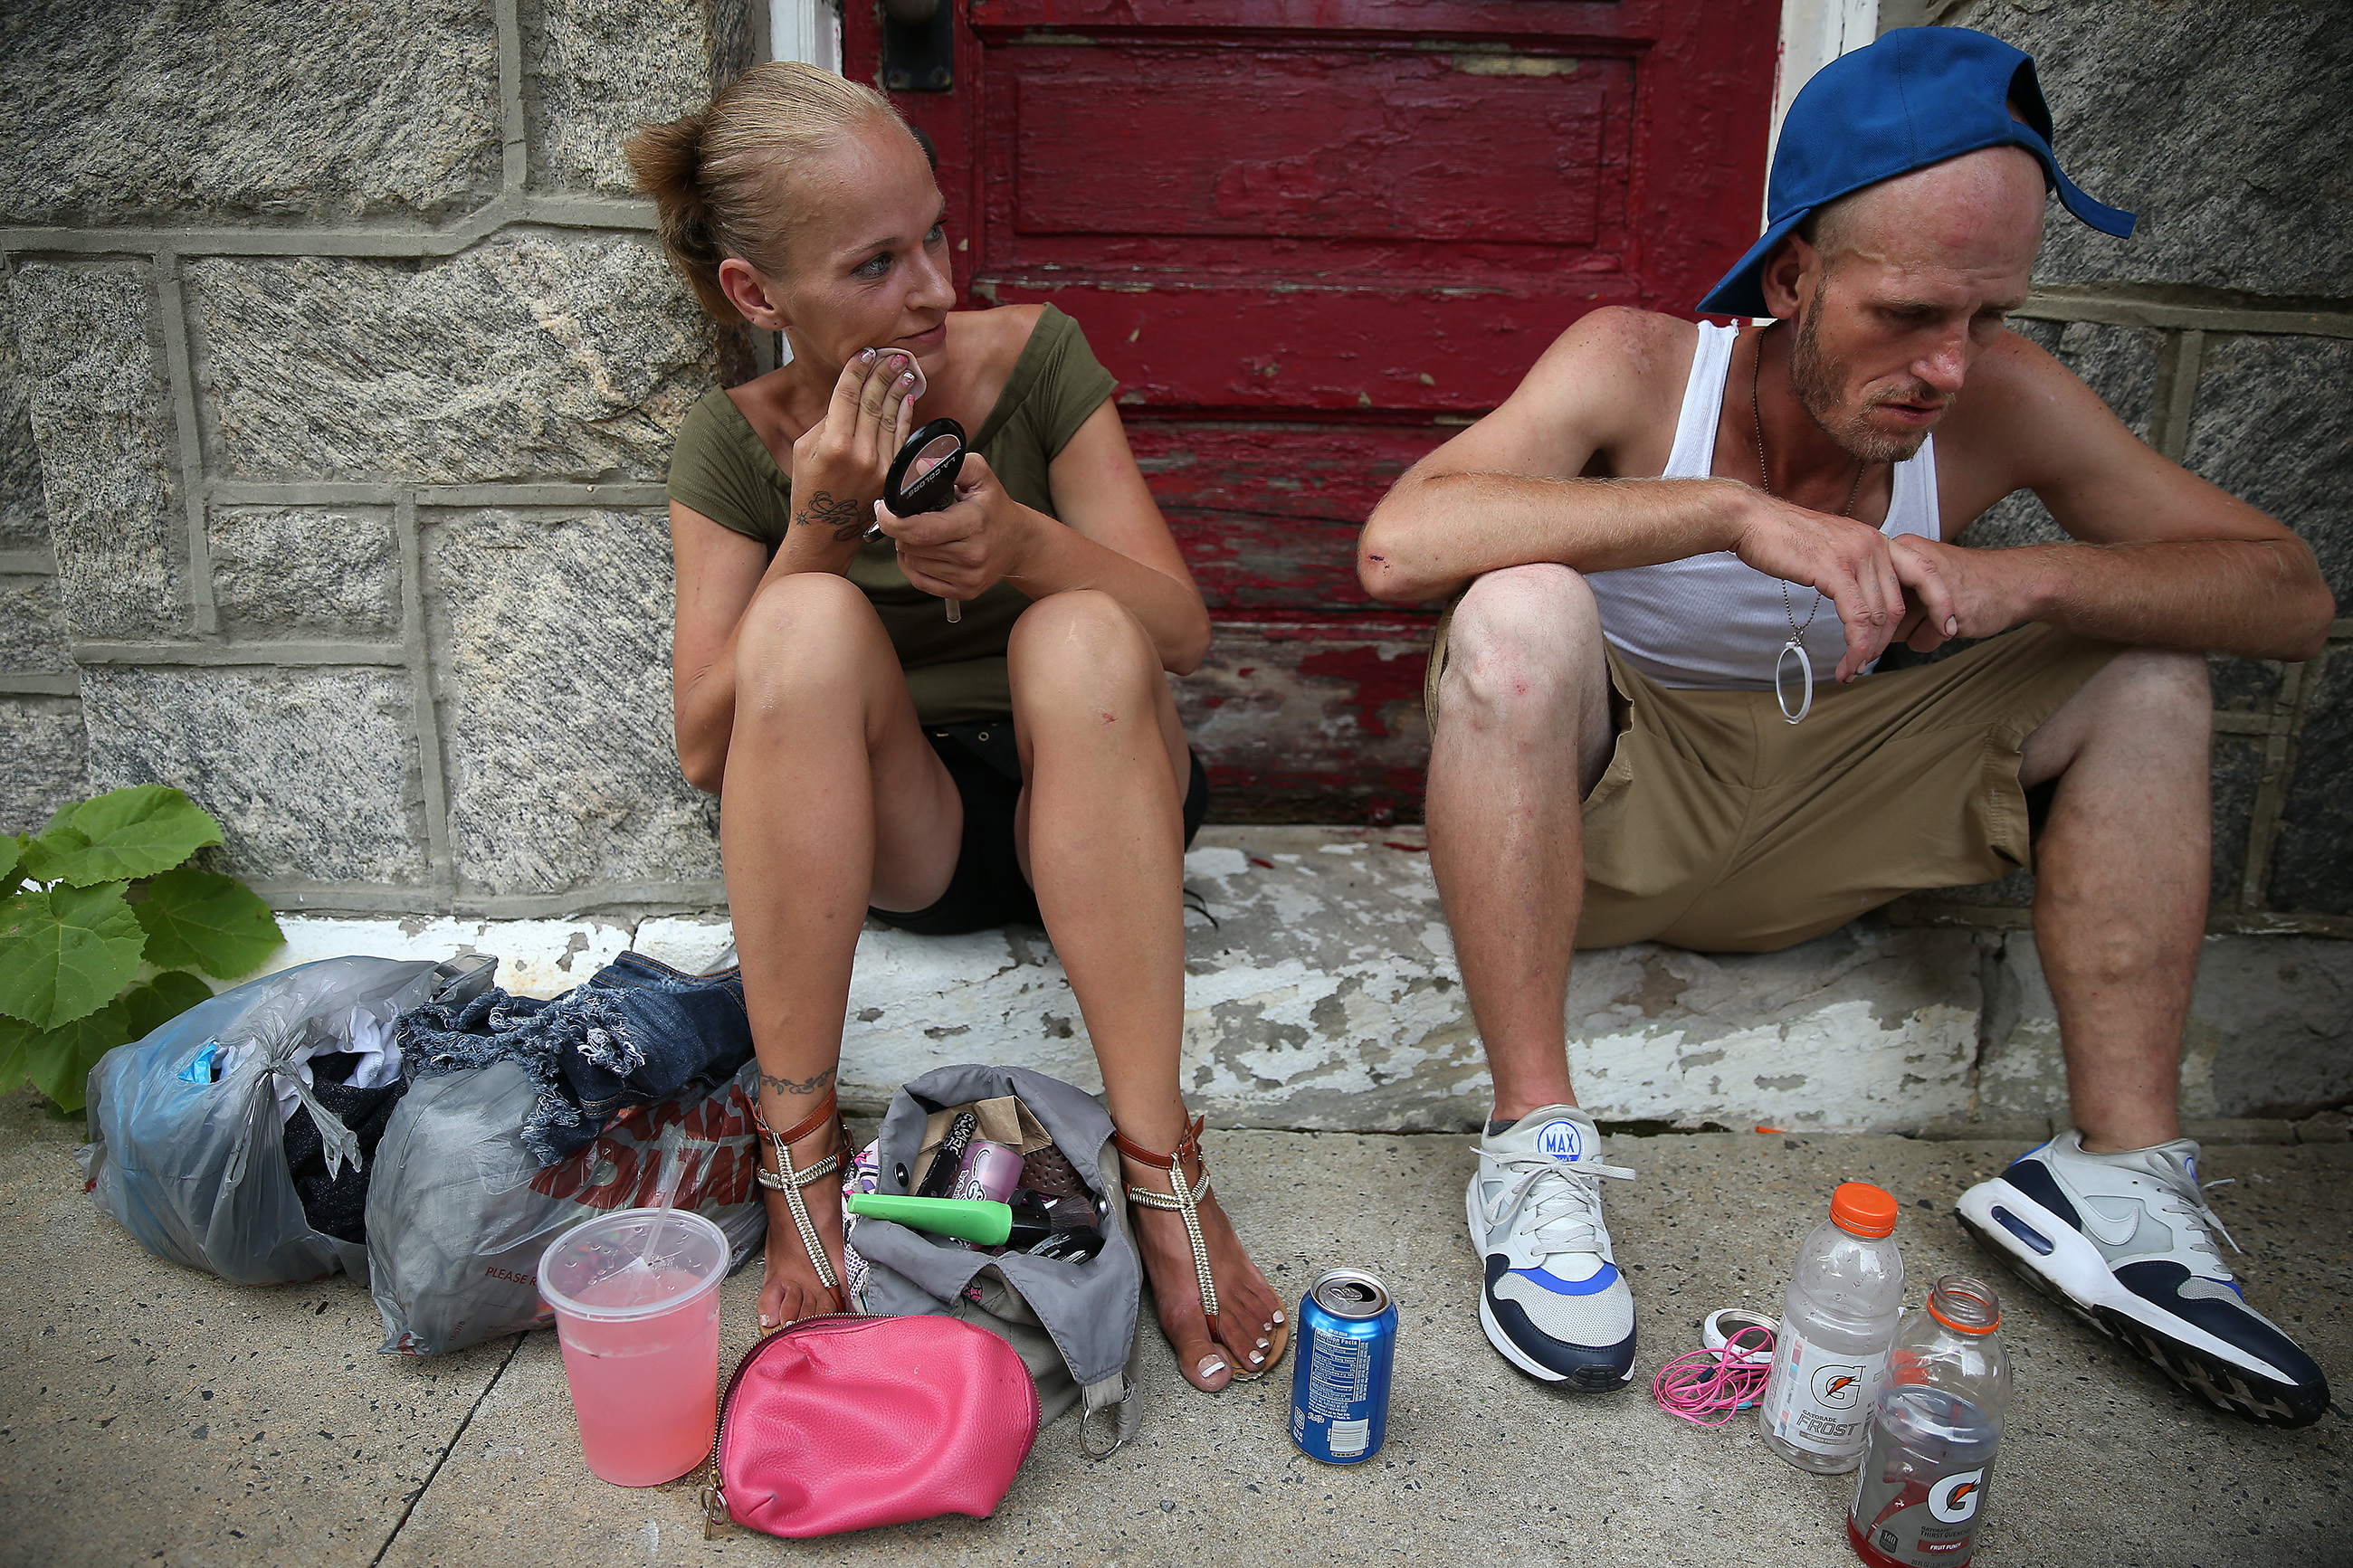 Carol Yancer, left, applies makeup and checks on her boyfriend, Ray Rivero, right, as he begins to nod off in Philadelphia, PA on July 20, 2017.